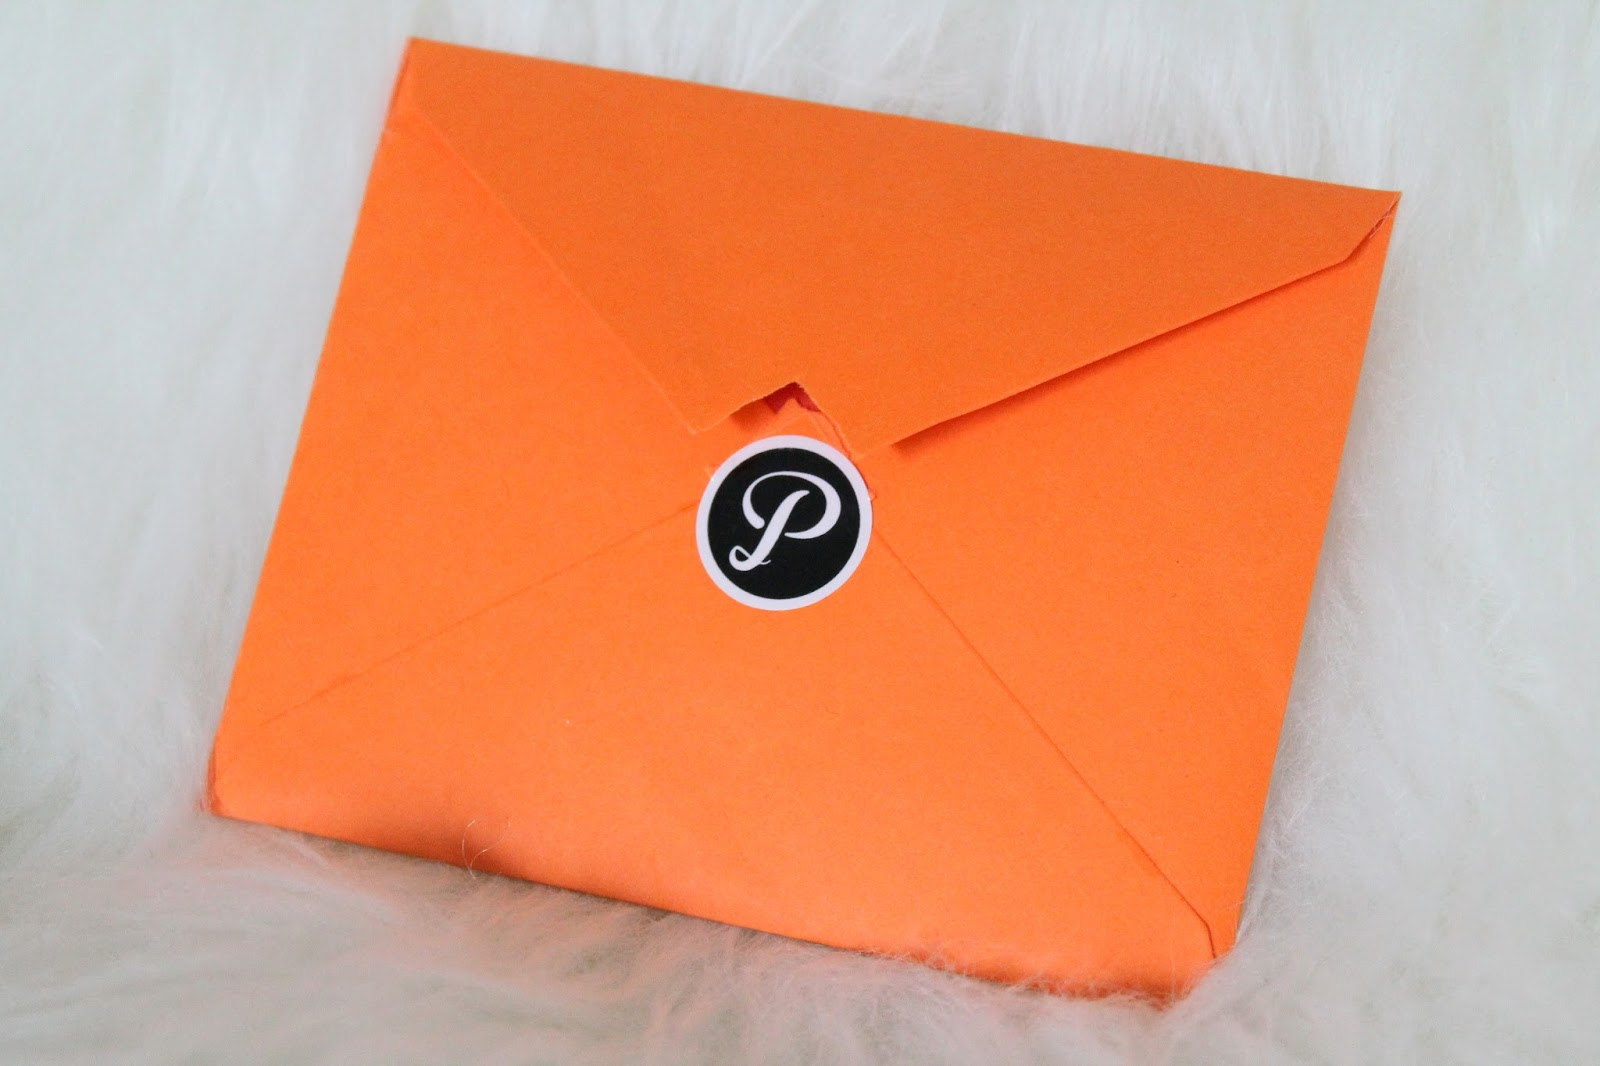 printic orange envelope